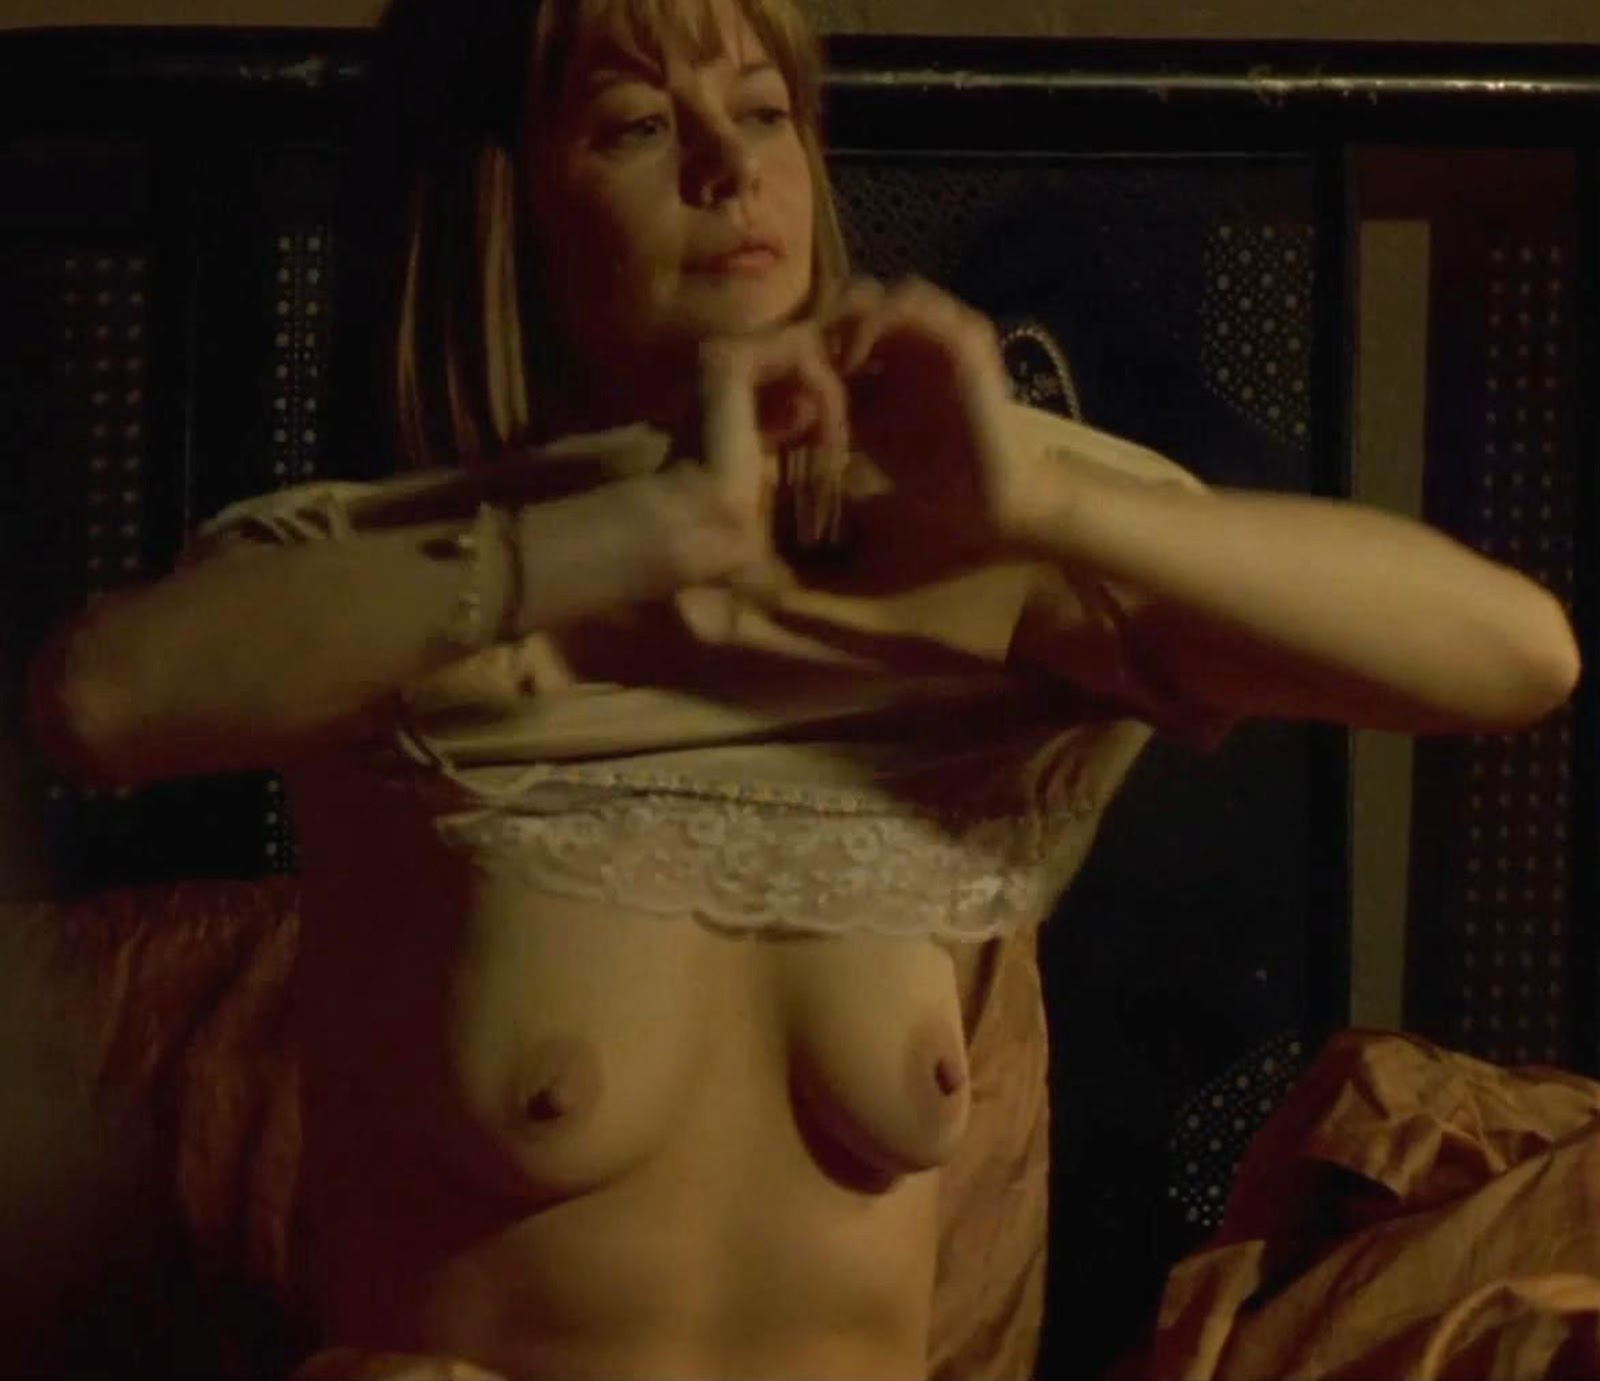 Meg ryan nude boobs and fucking in the cut movie 9